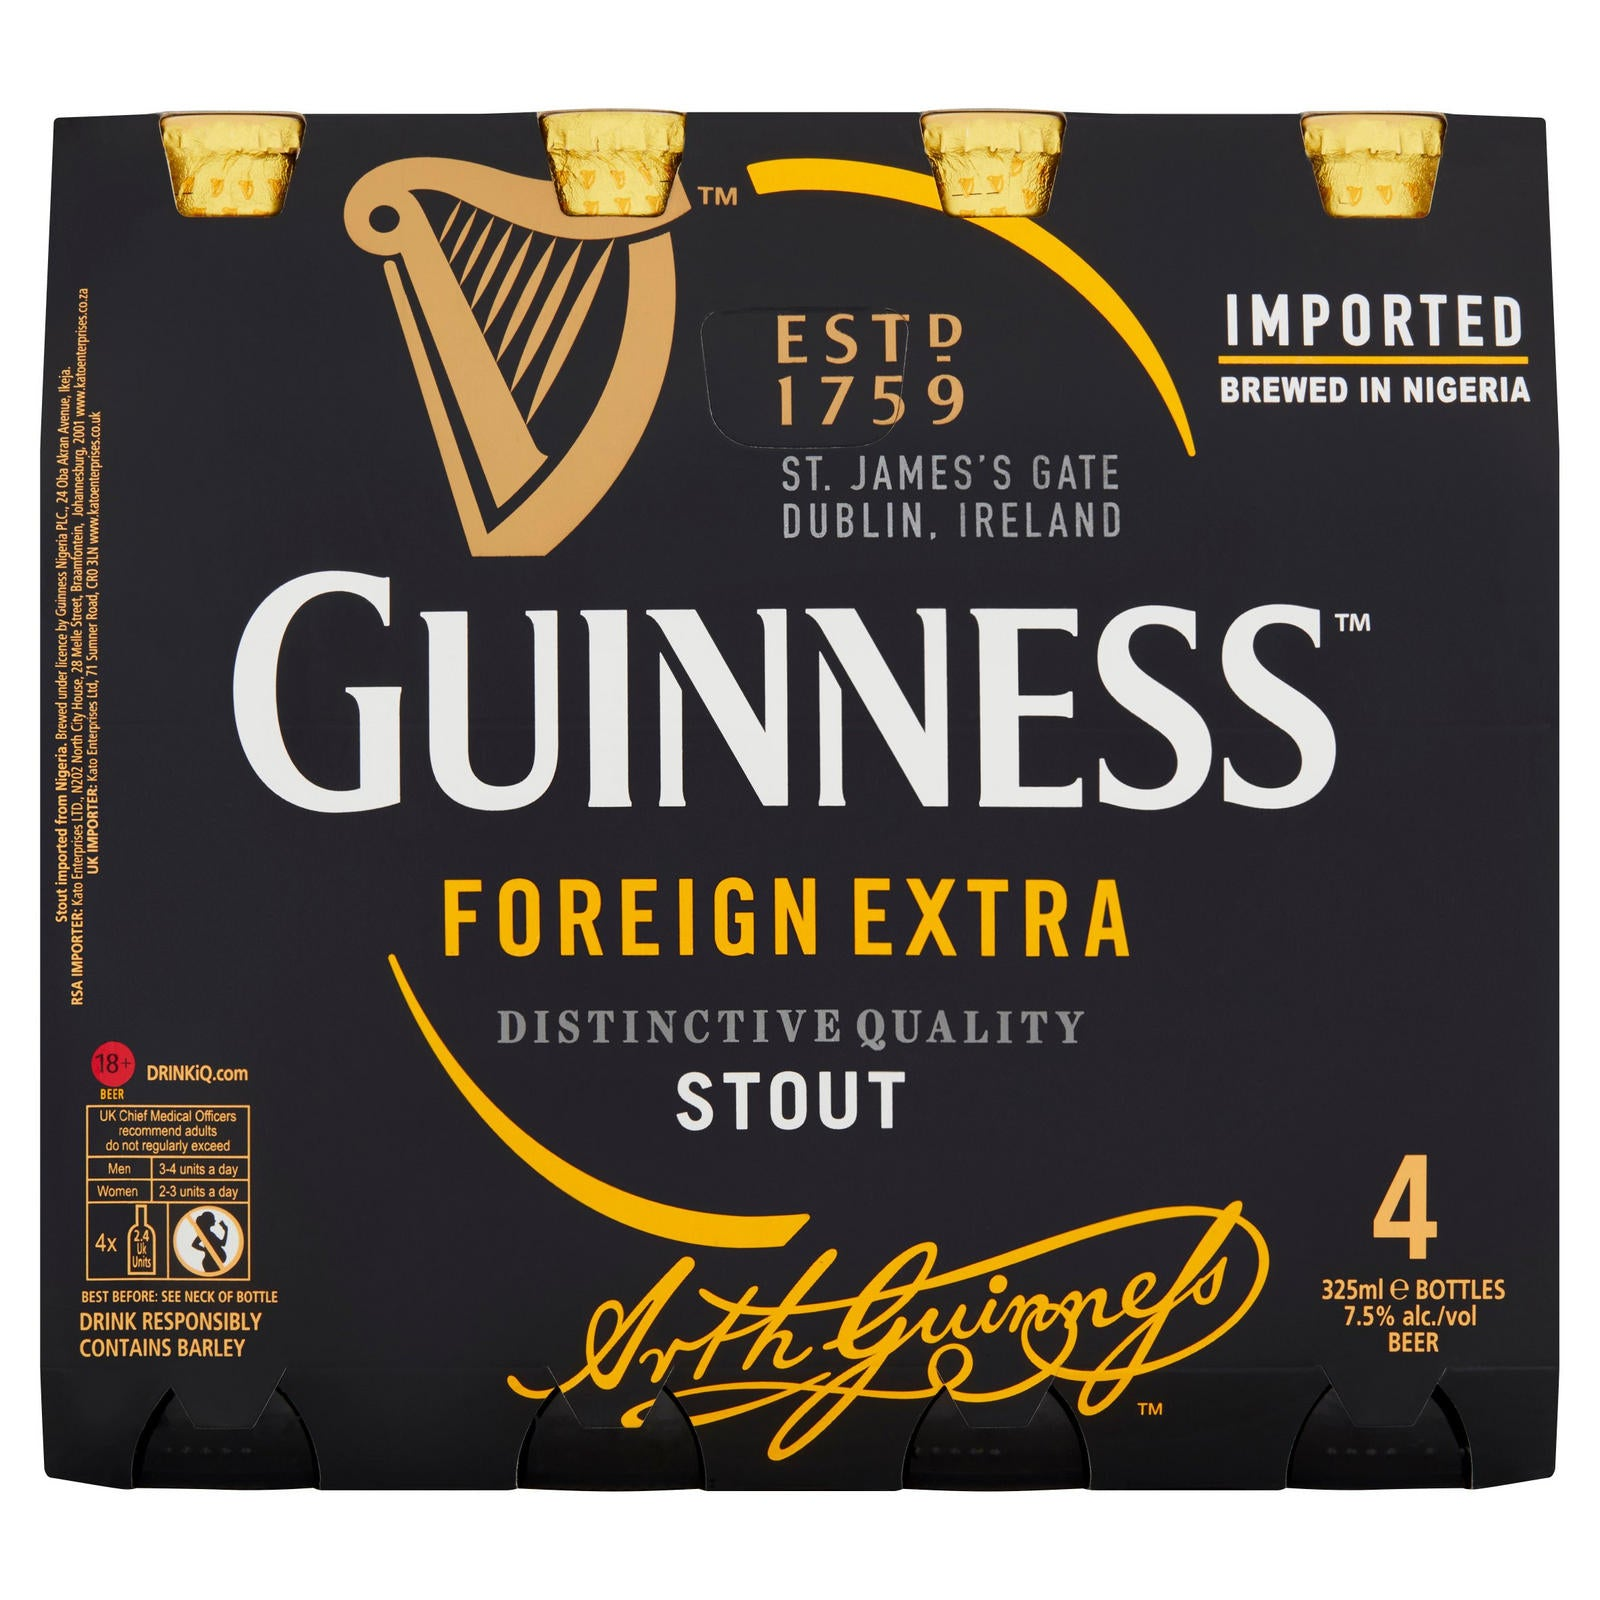 Guinness Foreign Extra Stout Nigerian Bottle 4 x 325ml